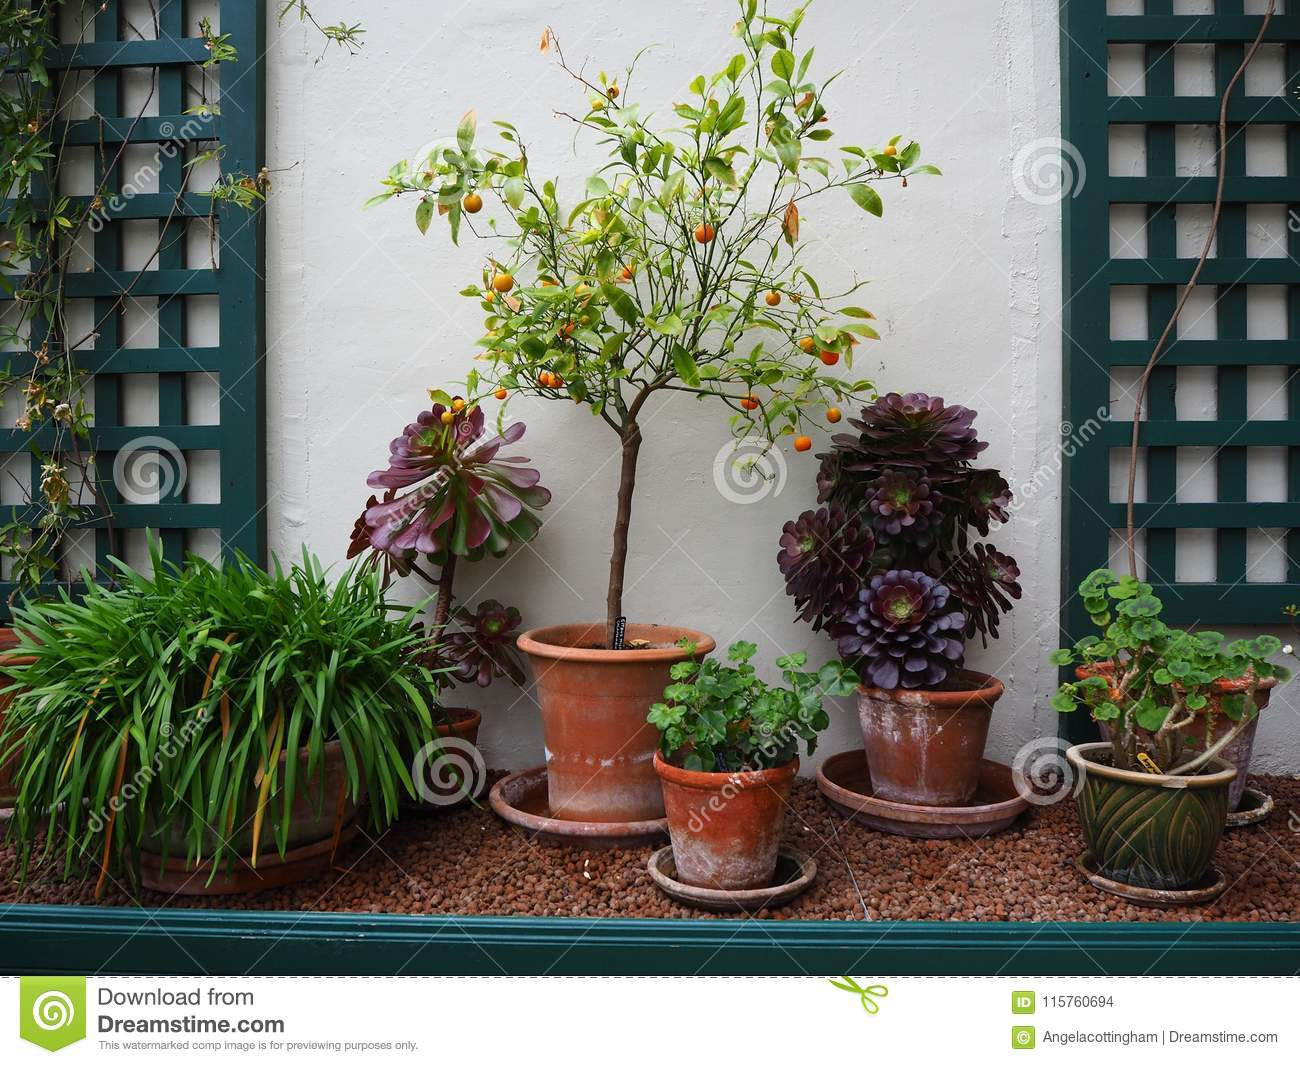 Potted plants growing in a conservatory against a white wall